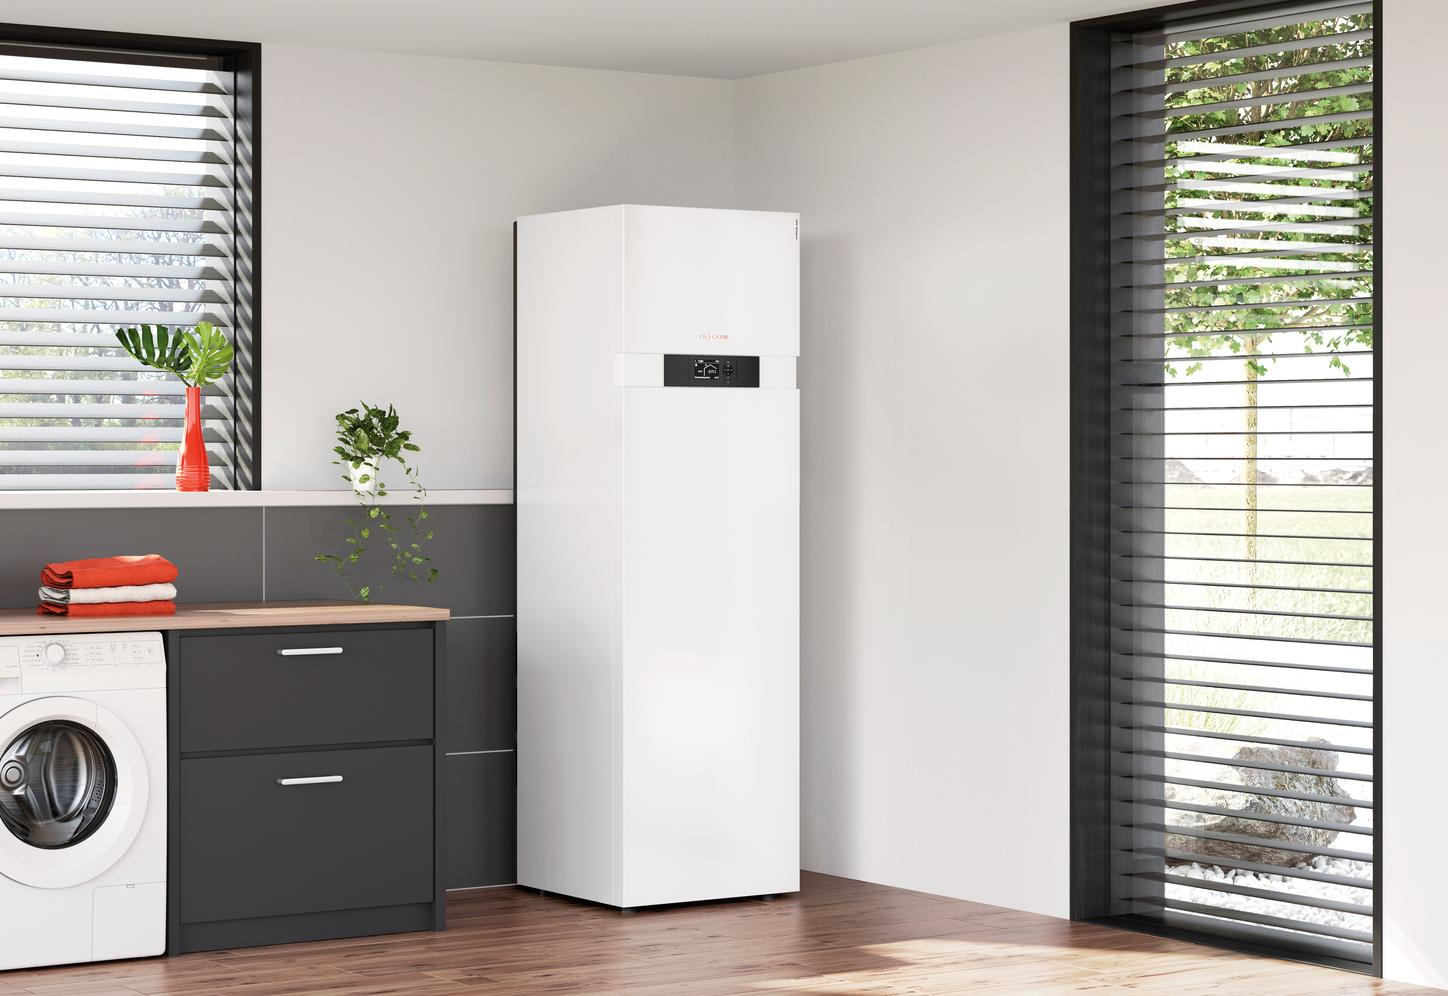 Picture shows the Viessmann Vitocal 222-G.